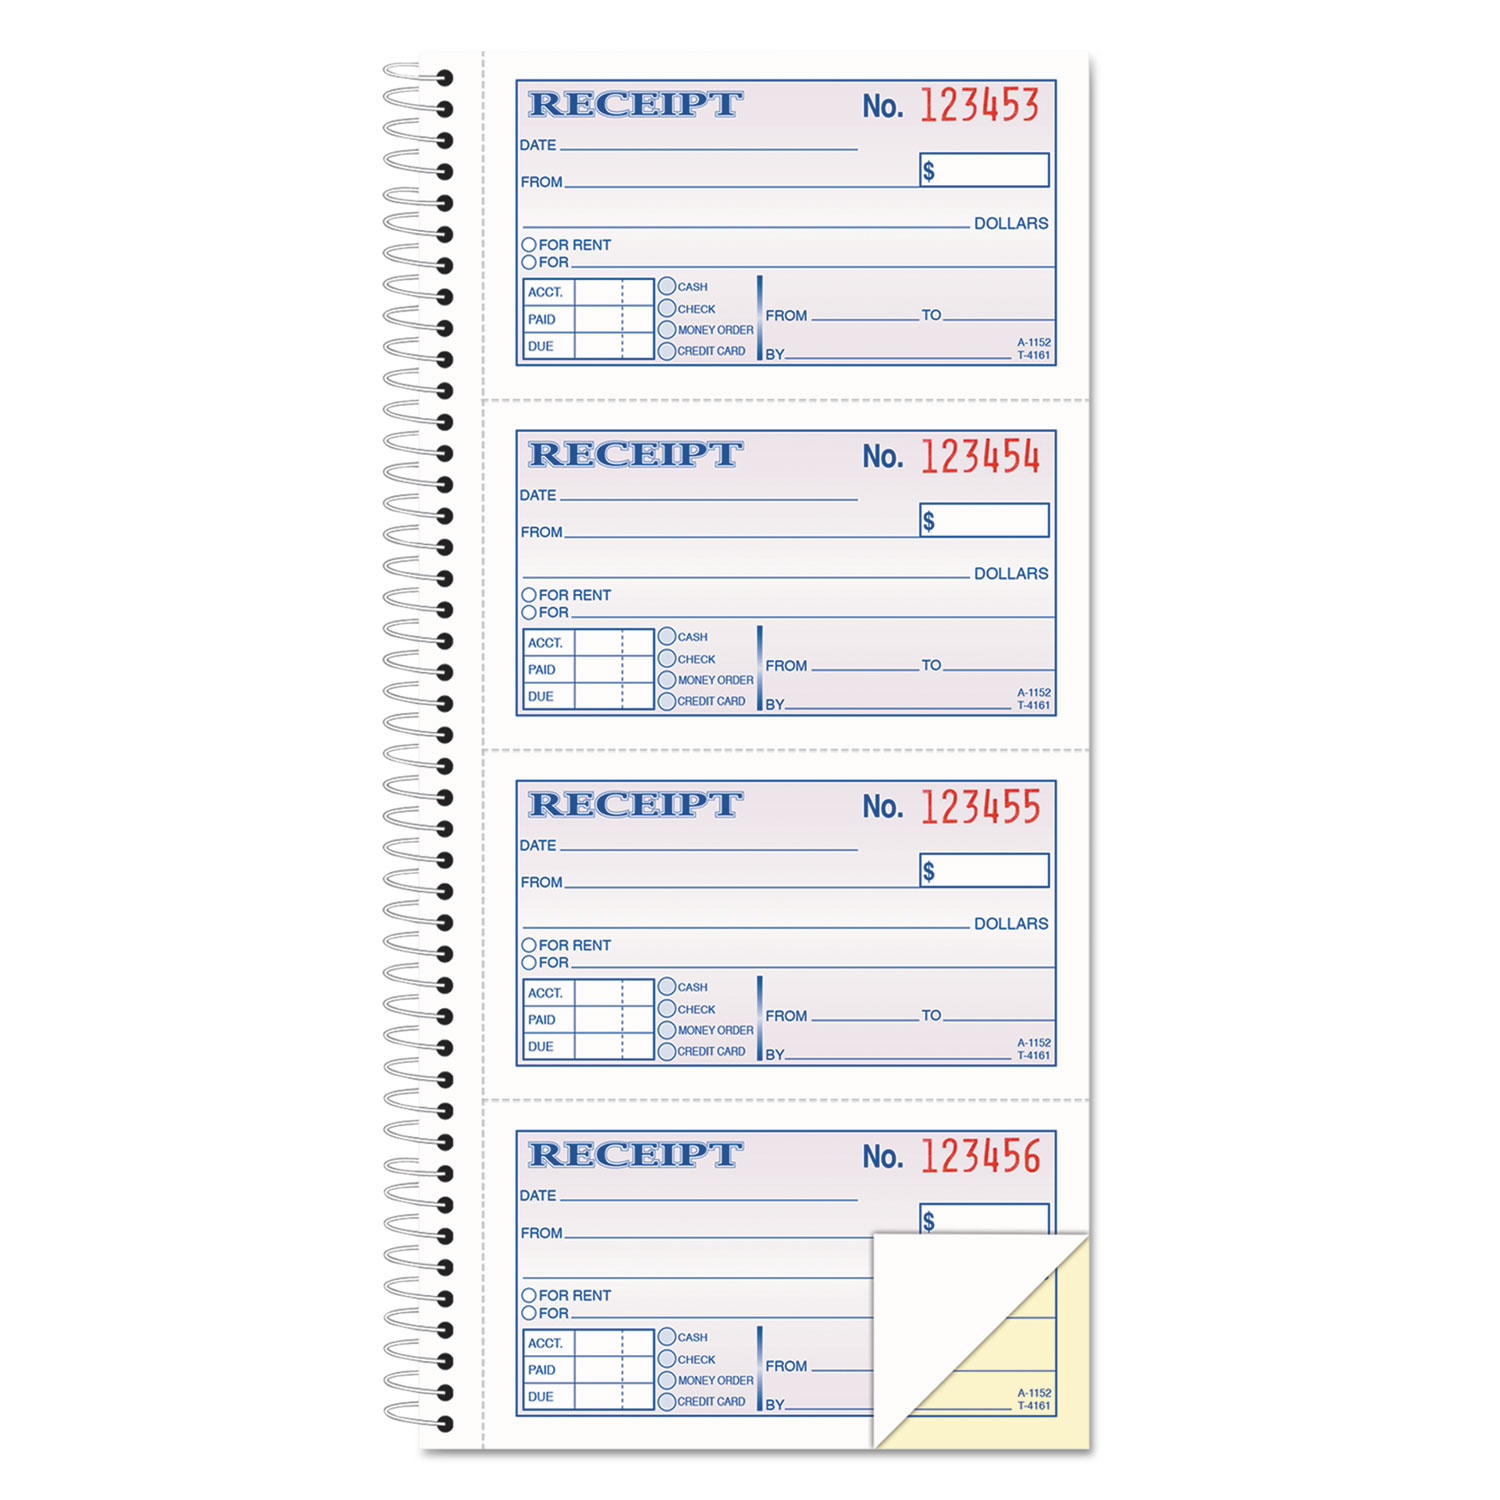 adams two part rent receipt book x carbonless  adams two part rent receipt book 2 3 4 x 4 3 4 carbonless 200 forms com